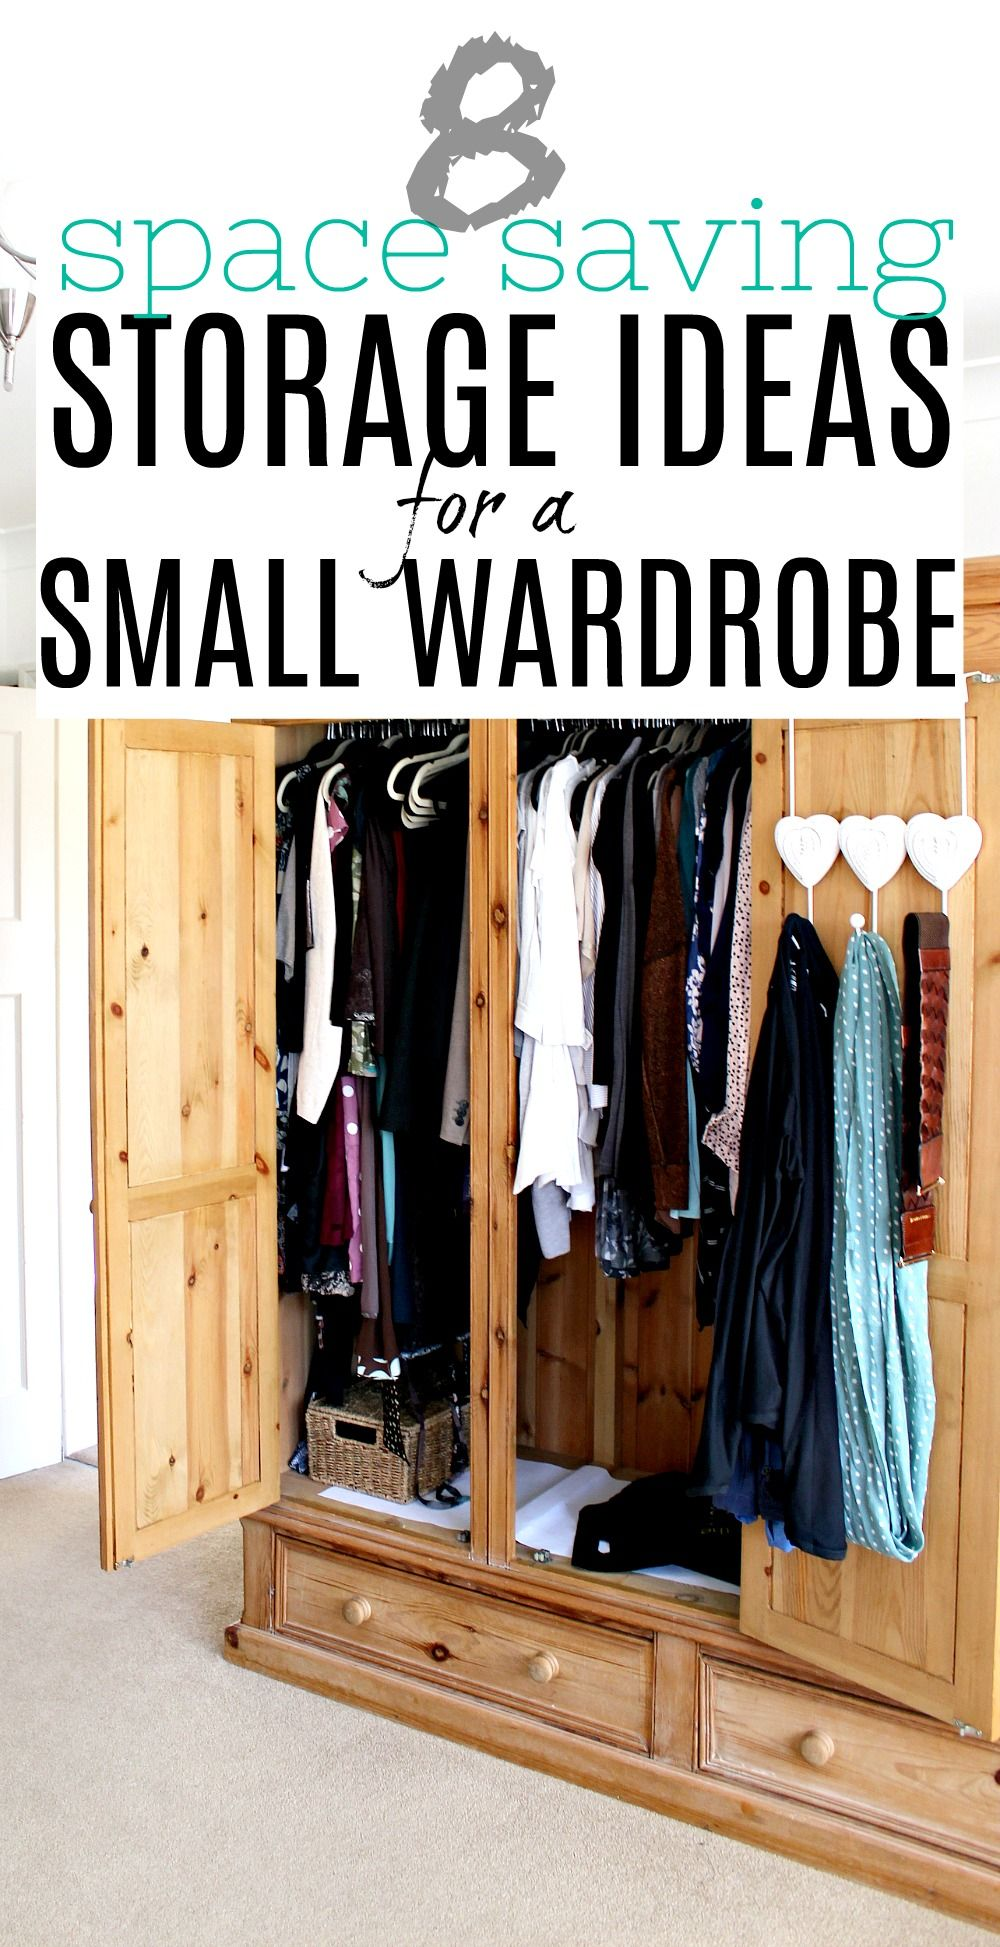 8 Amazing Space Saving Storage Ideas For A Small Wardrobe Small Wardrobe Storage Ideas Space Saving Storage Wardrobe Storage